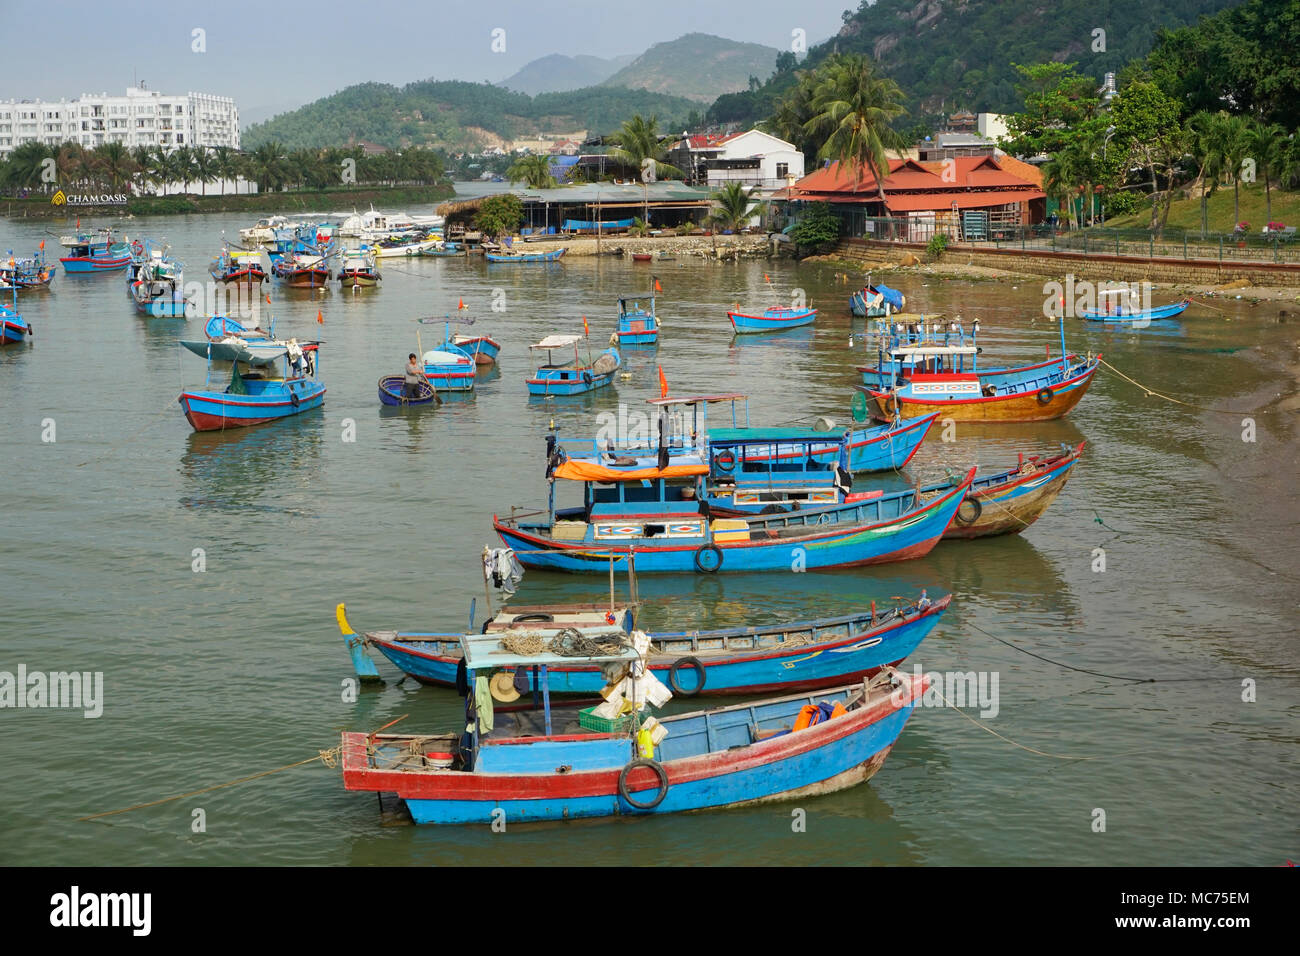 Fishing boats on the Cai River, a Tributary off the South China Sea, Nha Trang, Vietnam - Stock Image